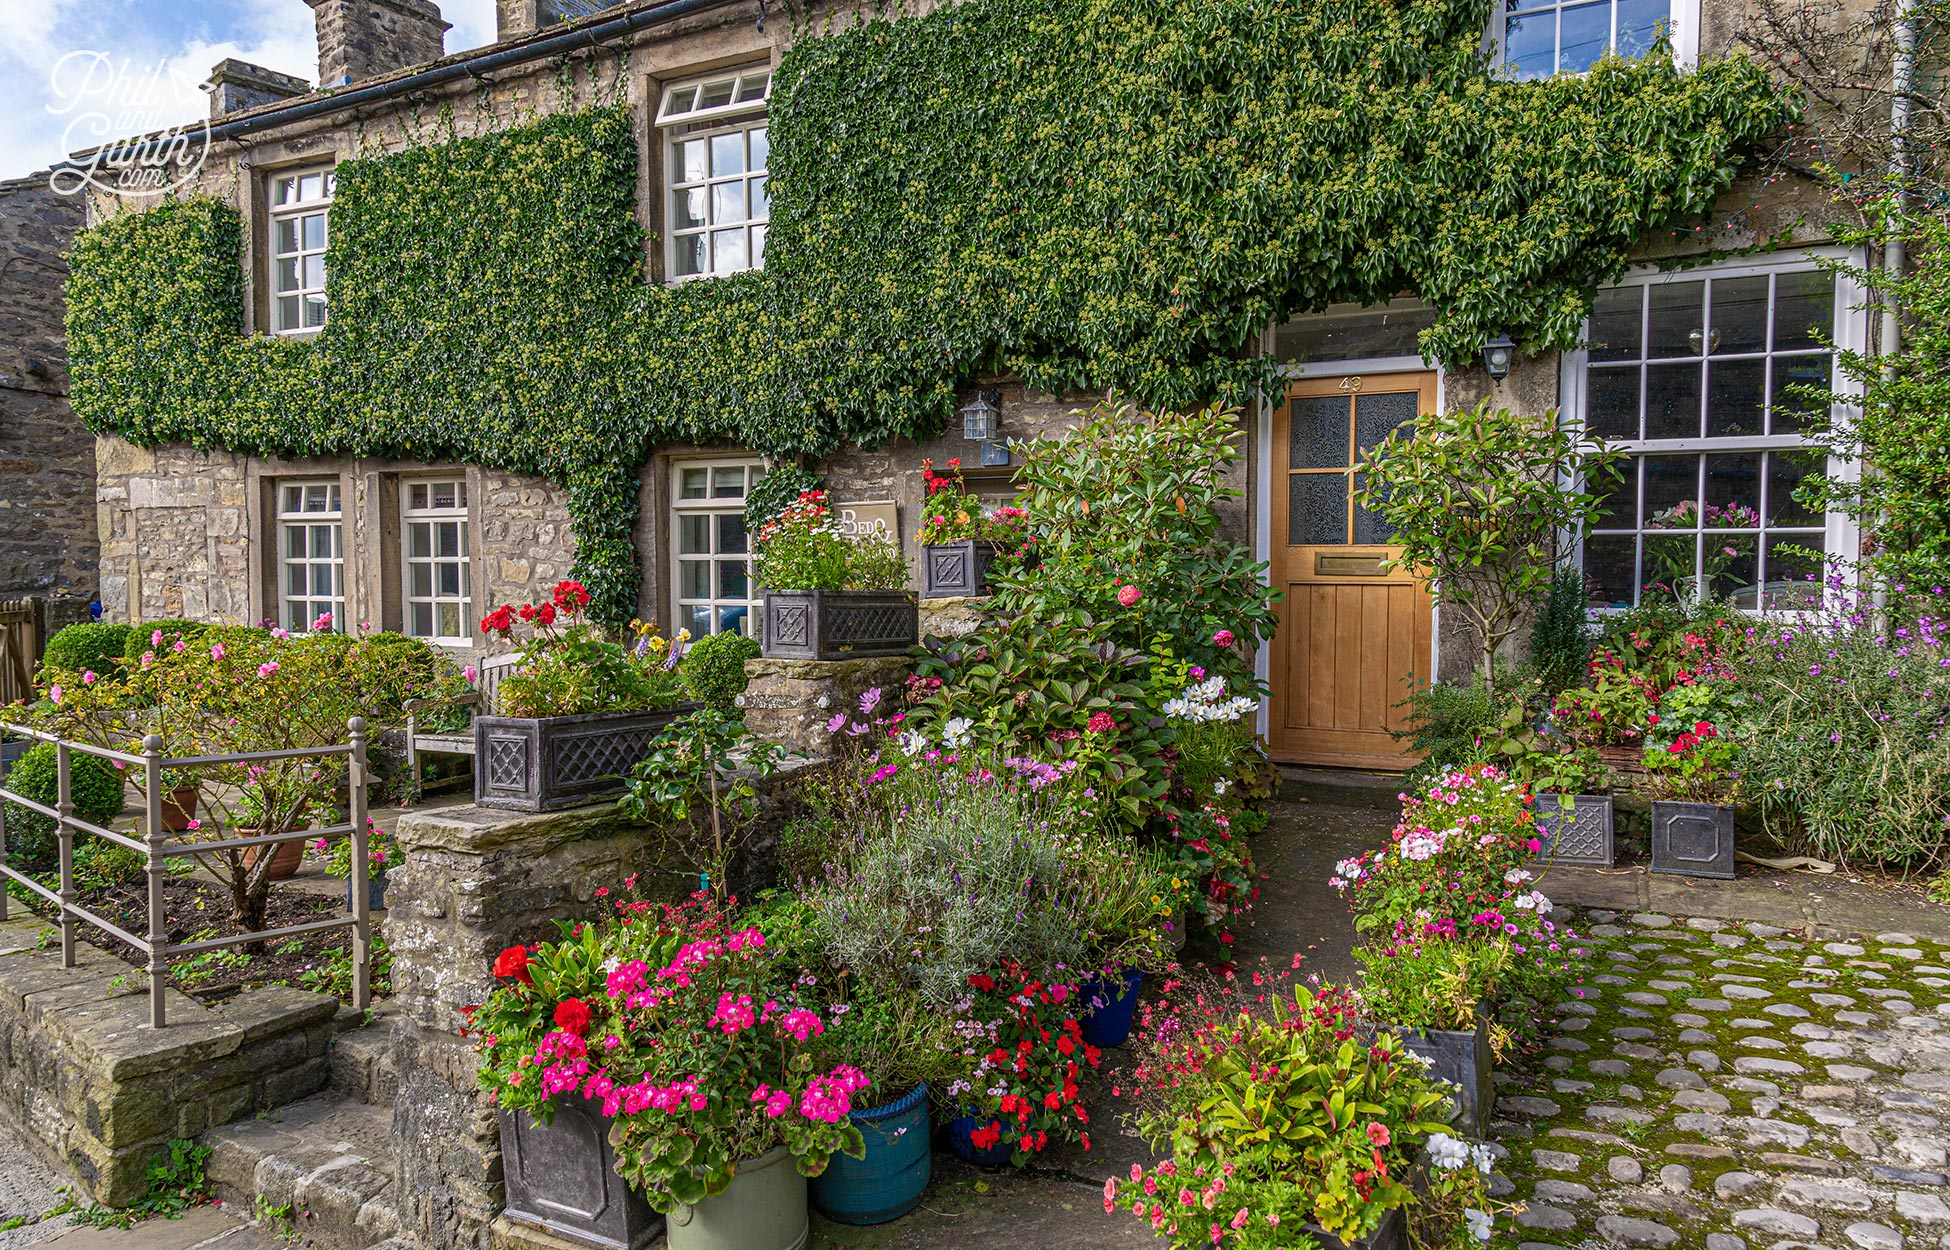 Pretty flower filled front gardens in Grassington